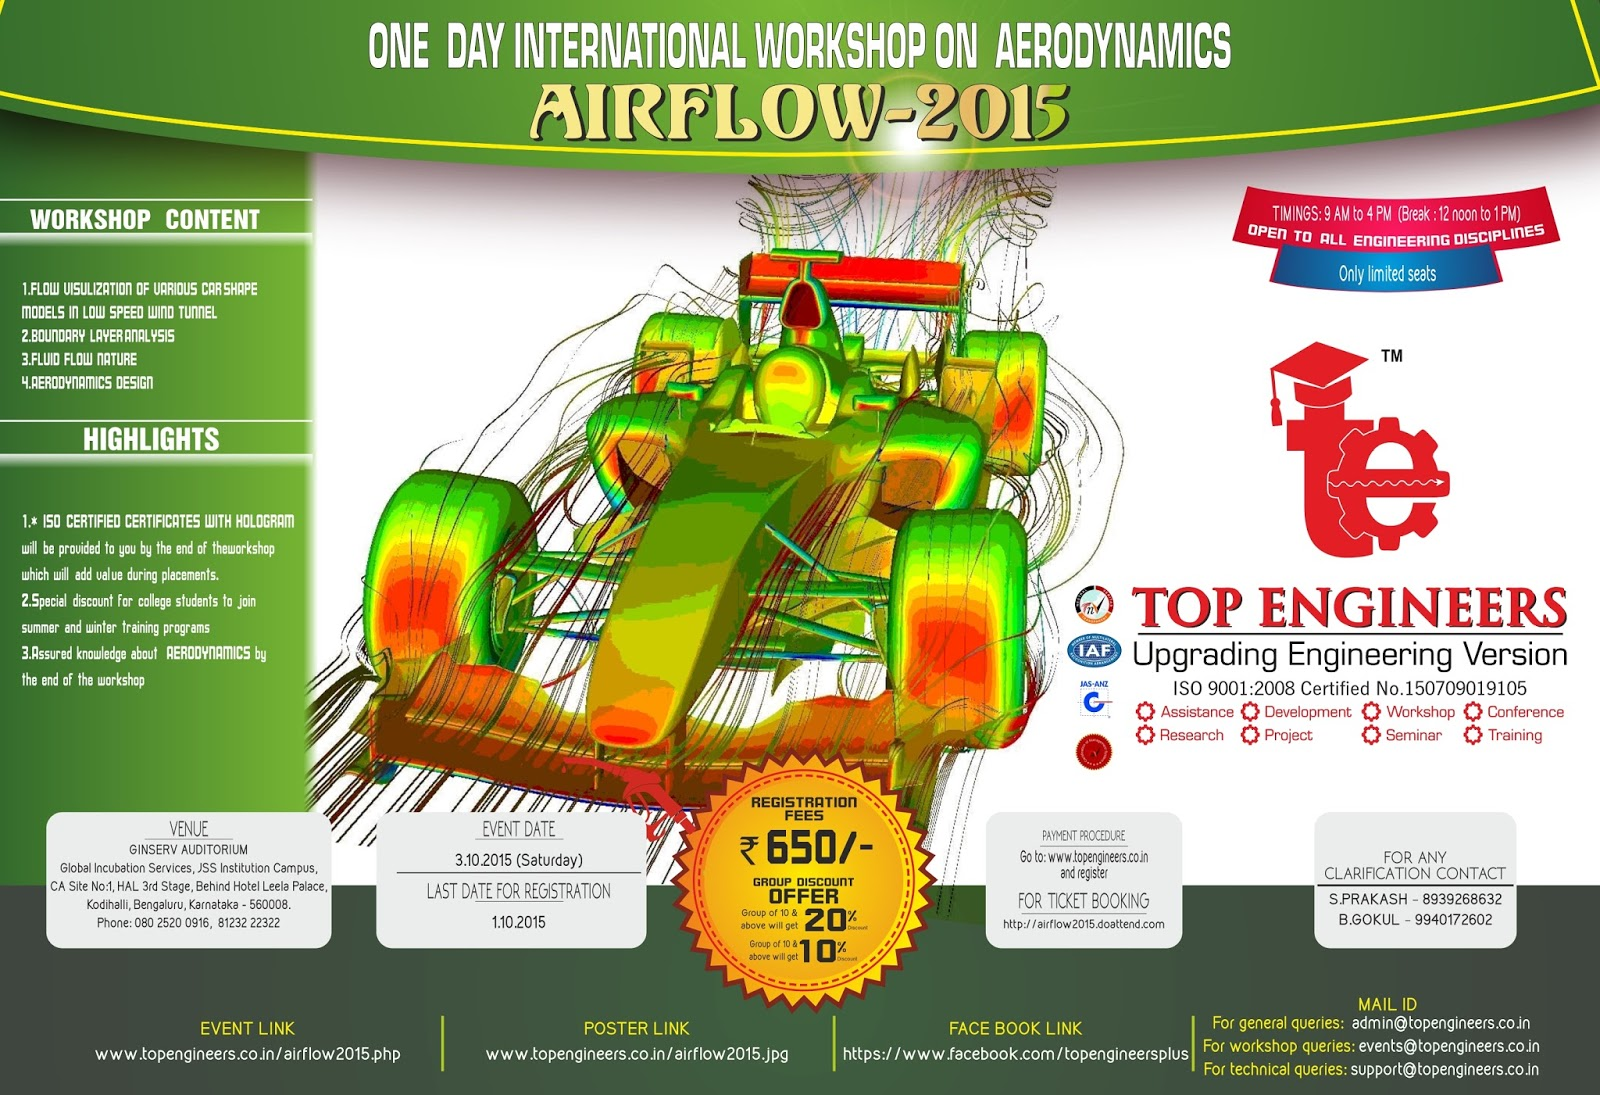 One Day International Workshop on Aerodynamics - Air Flow 2015